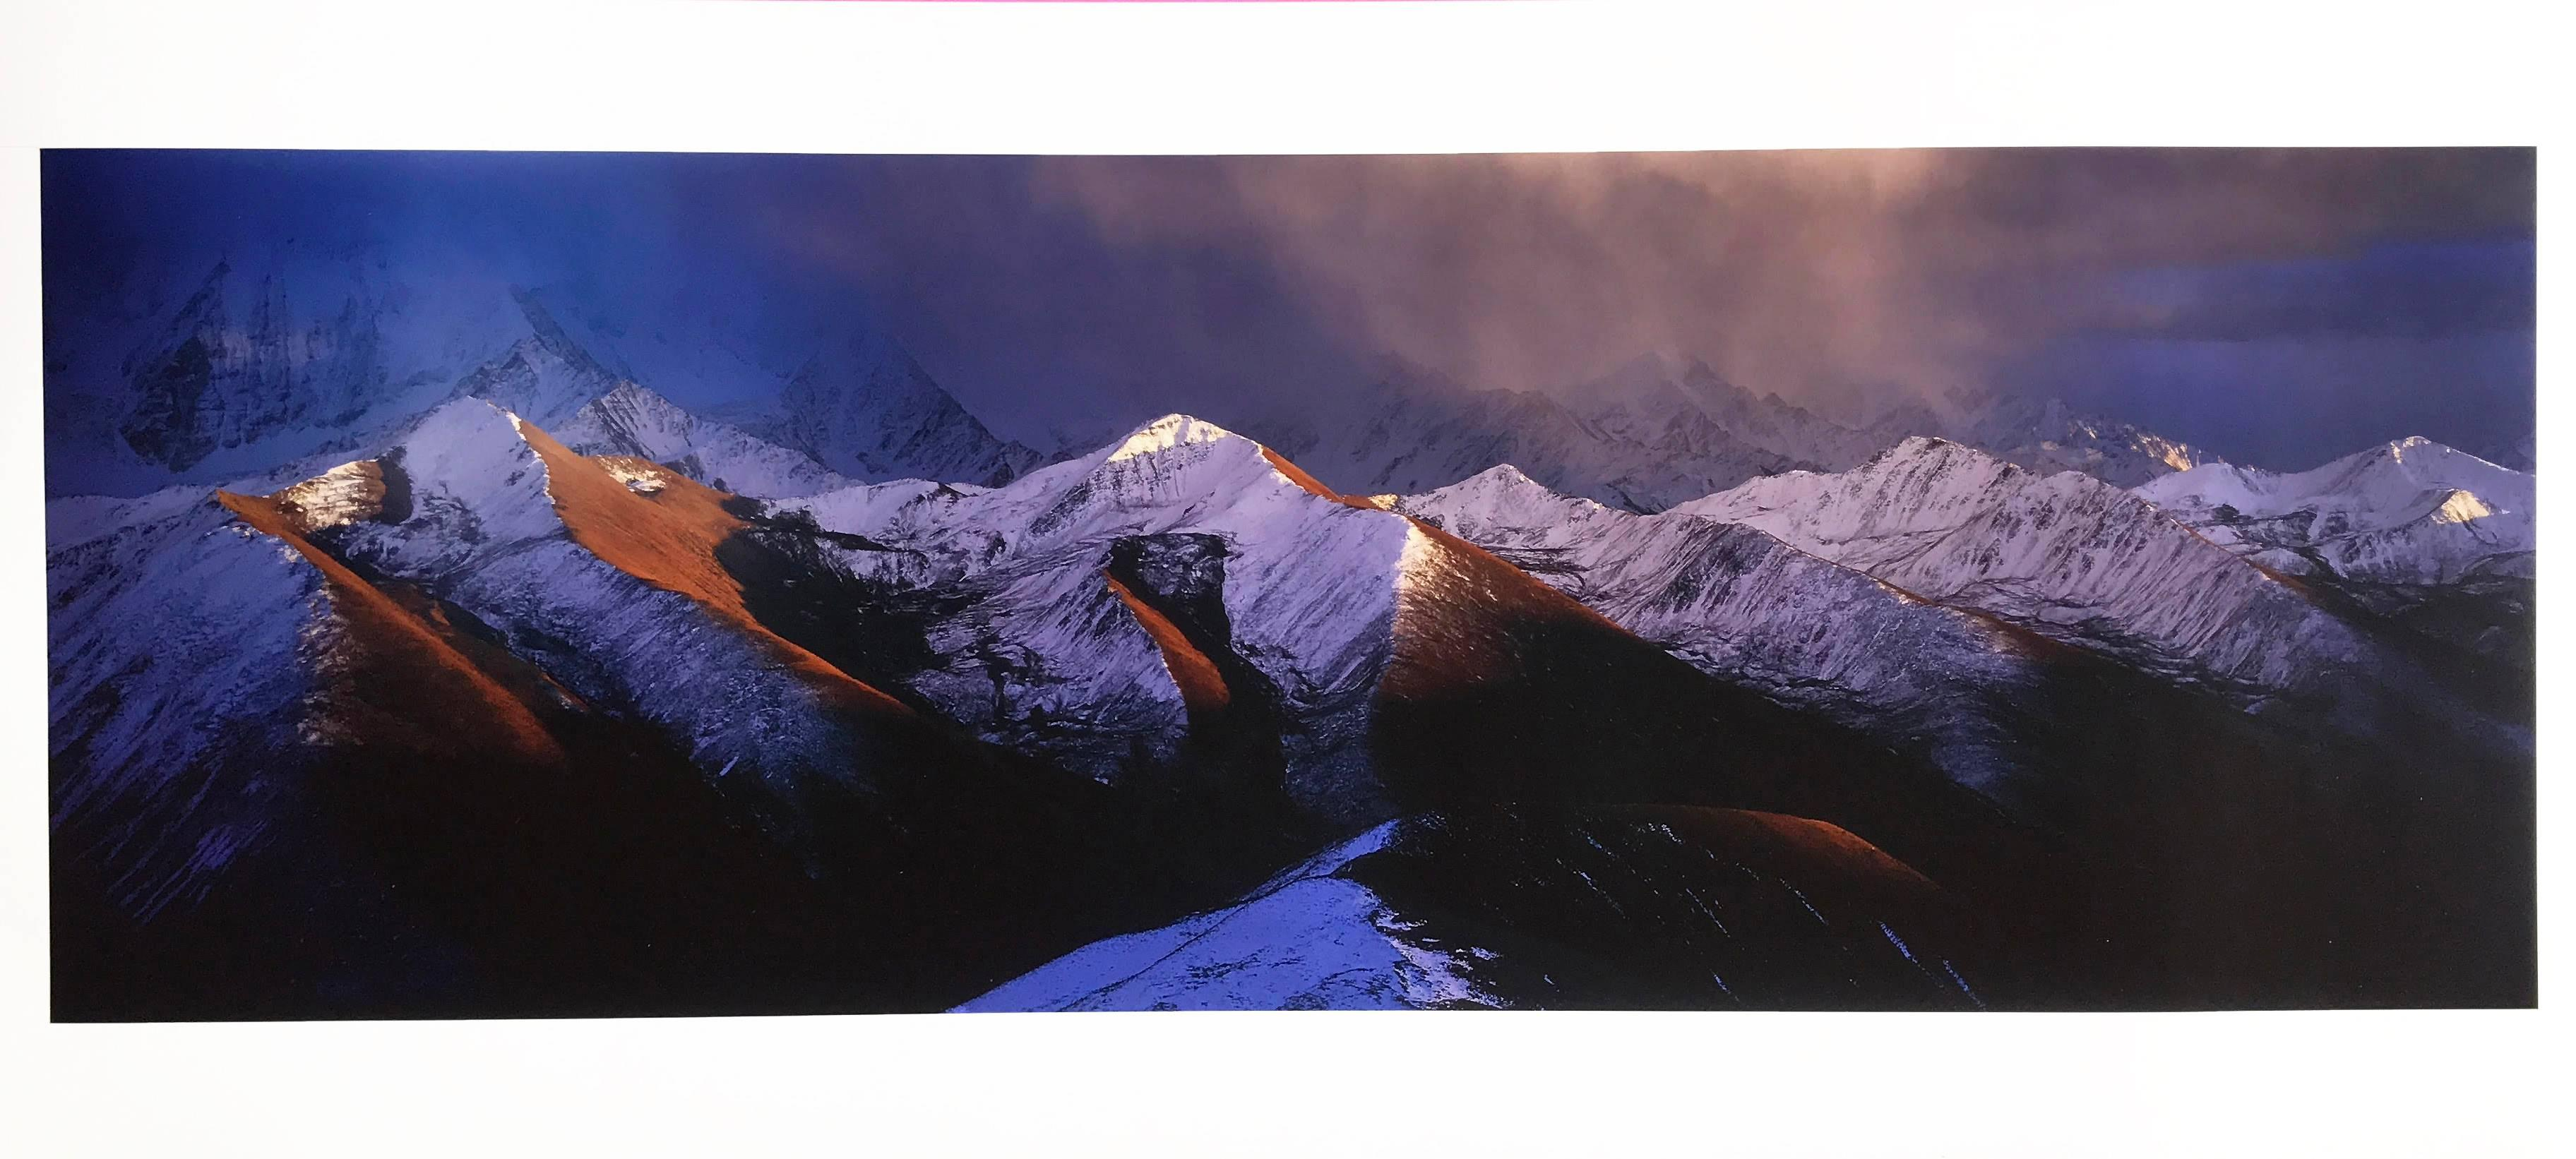 King of the Mountains, Himalayas, Contemporary Chinese Photography